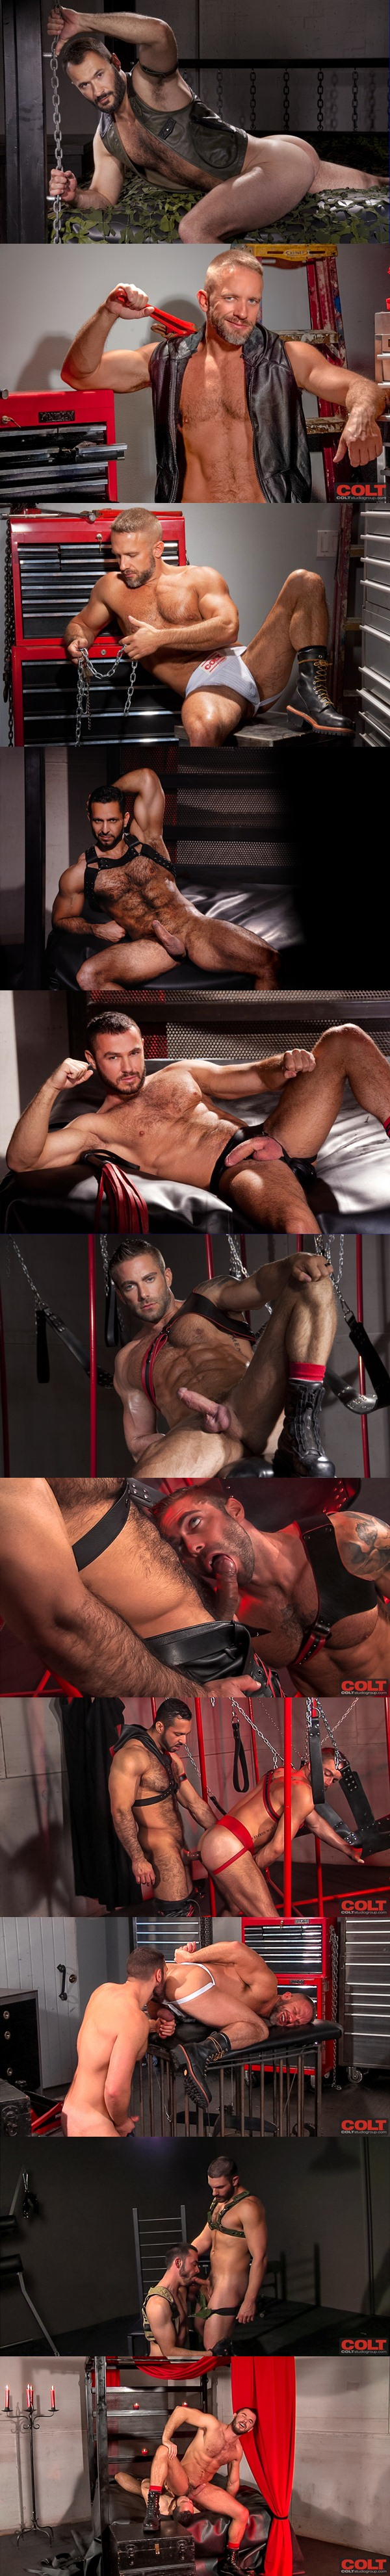 Wilfried Knight, Dolan Wolf, Jessy Ares, Dirk Caber, Adam Champ, Jake Genesis and Bob Hager have masculine rough men sex in Armour at Coltstudiogroup 01